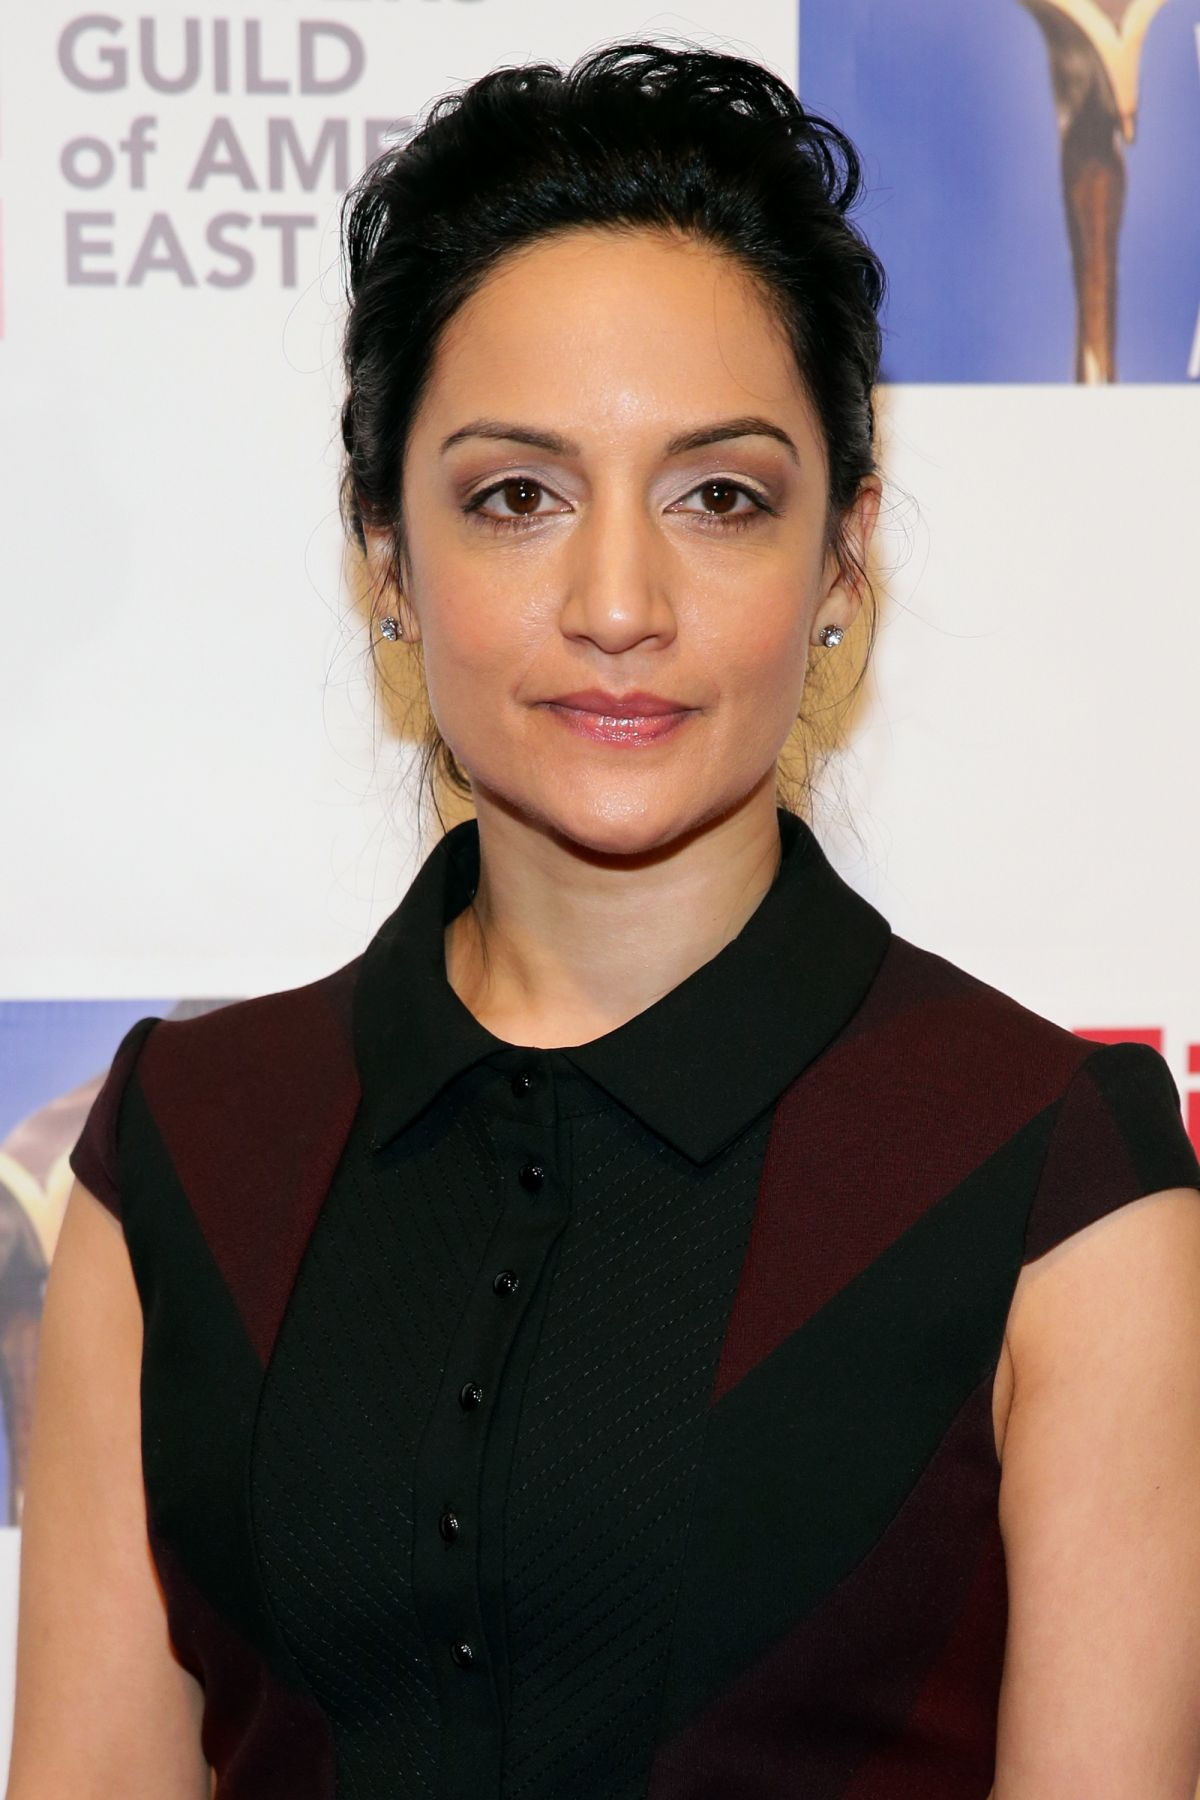 ARCHIE PANJABI at 2014 Writers Guild Awards in New York - archie-panjabi-at-2014-writers-guild-awards-in-new-york_4